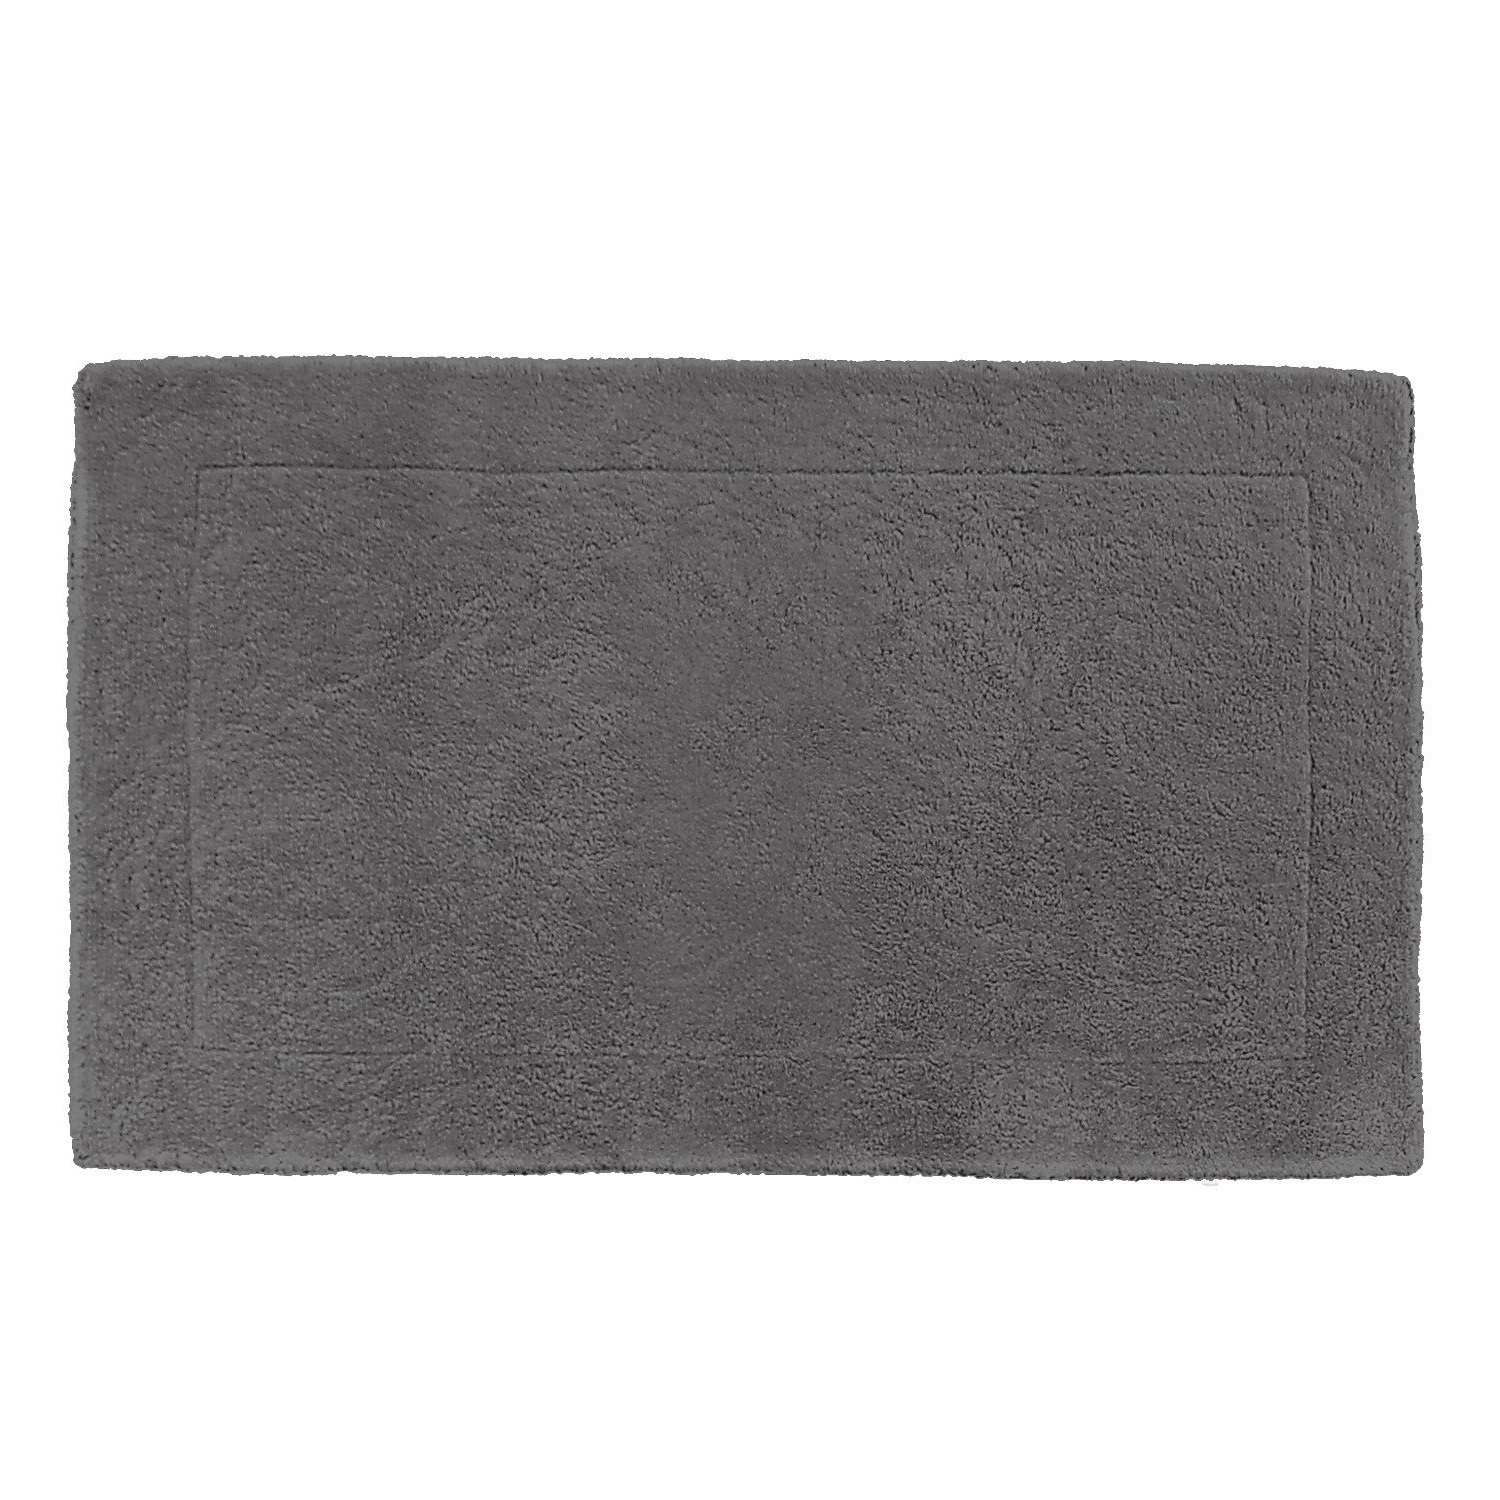 Double Sided Bath Rugs - Assorted Colours-9